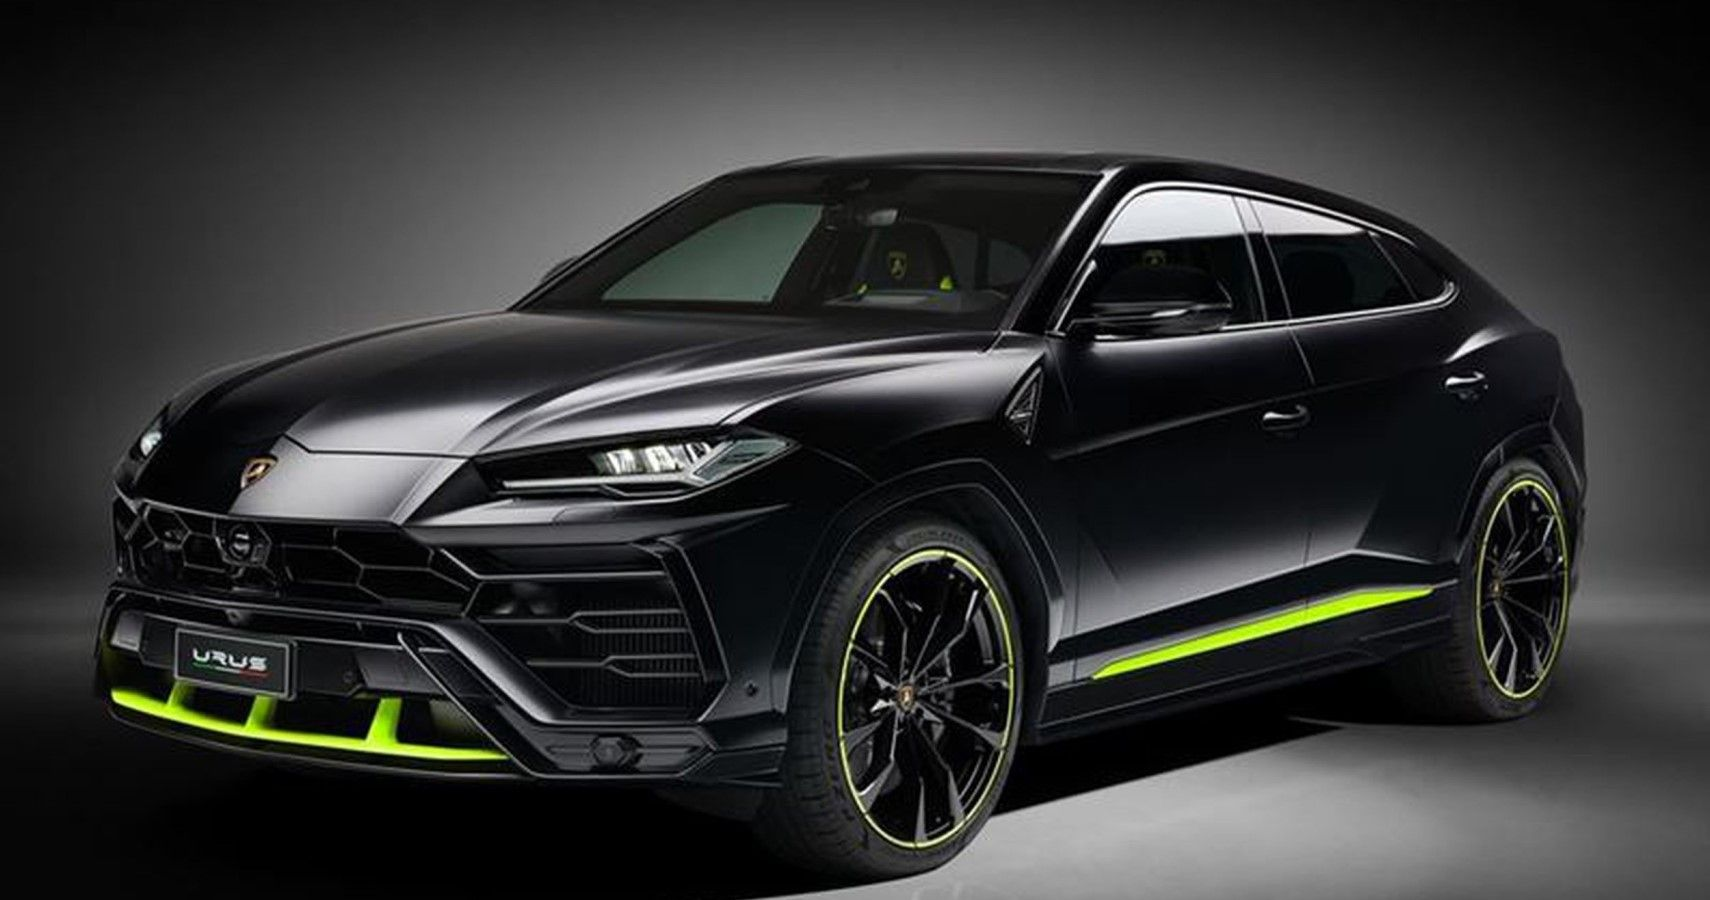 Here's What We Expect From The 2021 Lamborghini Urus